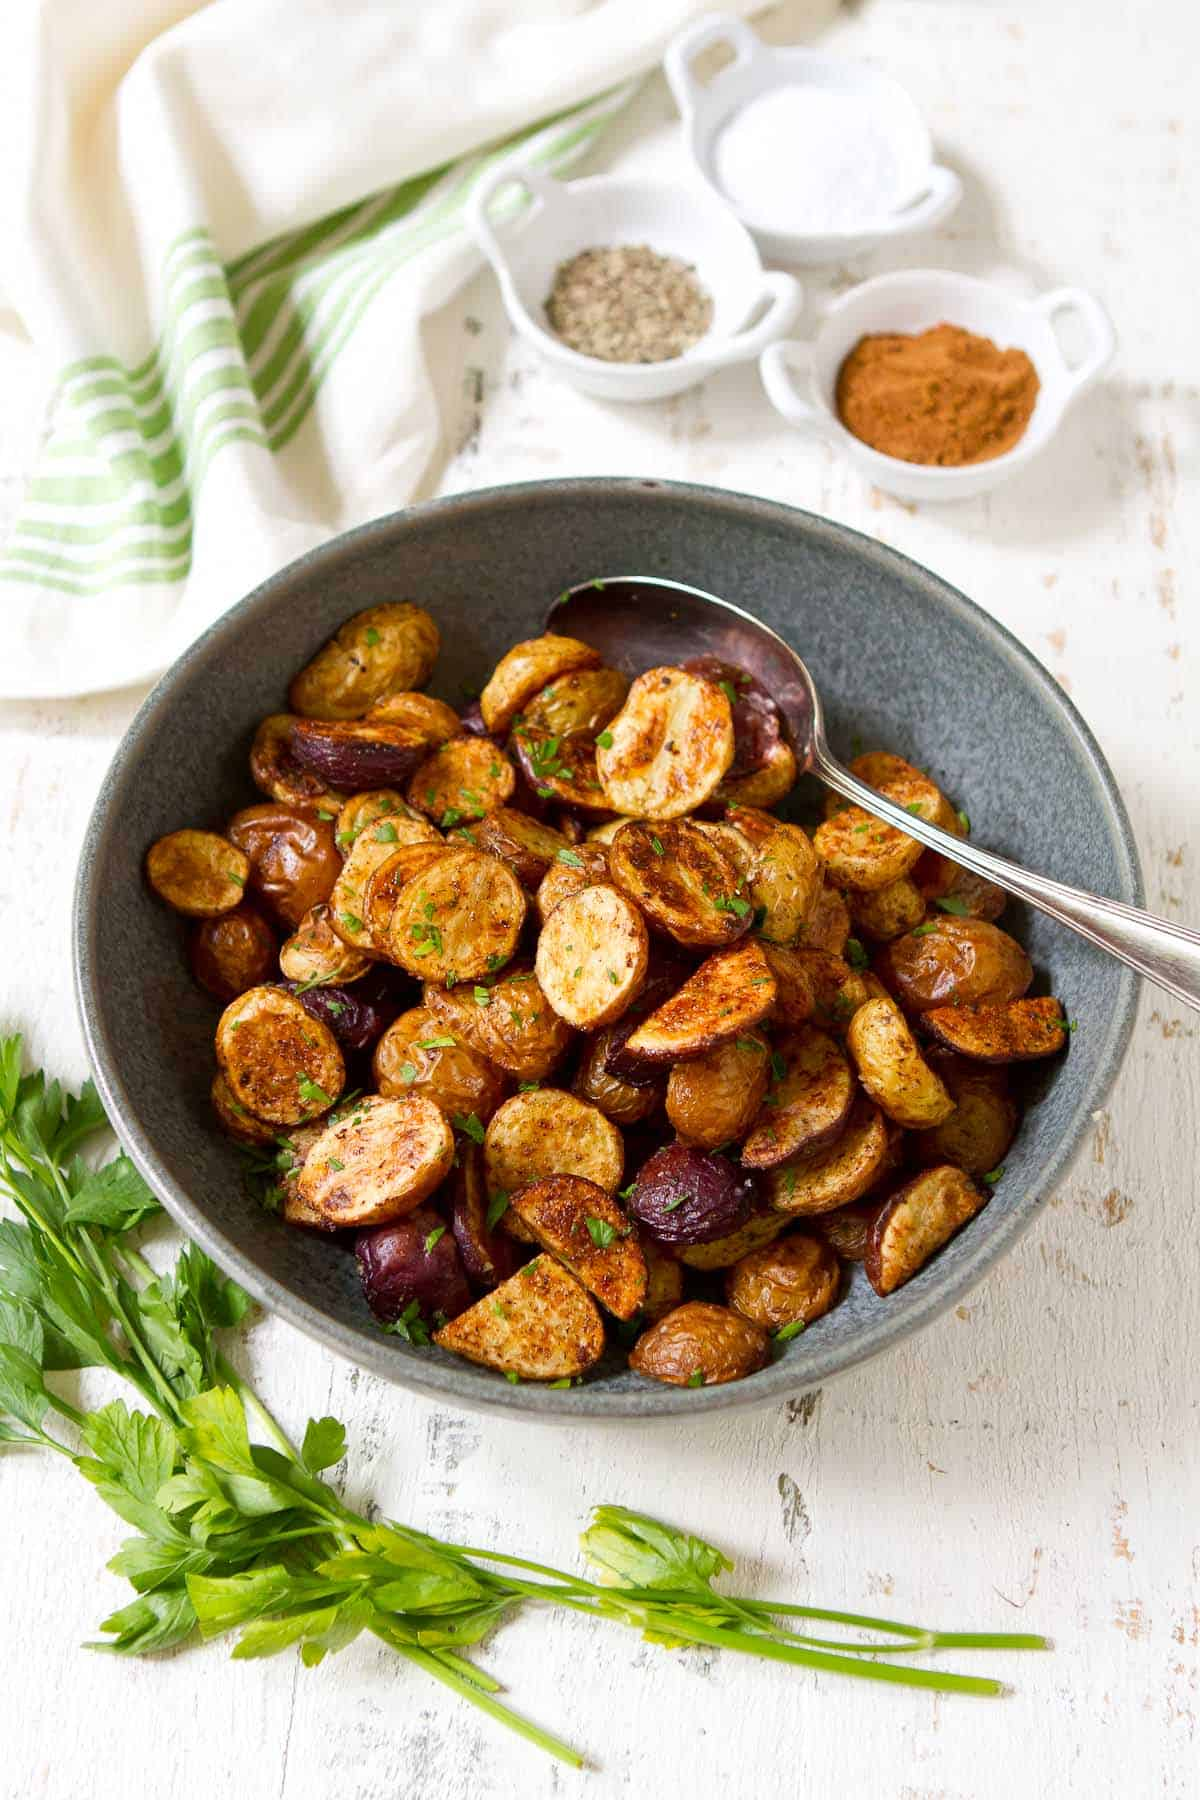 Roasted mini potatoes and spoon in a gray bowl. Parsley and seasonings on the side.